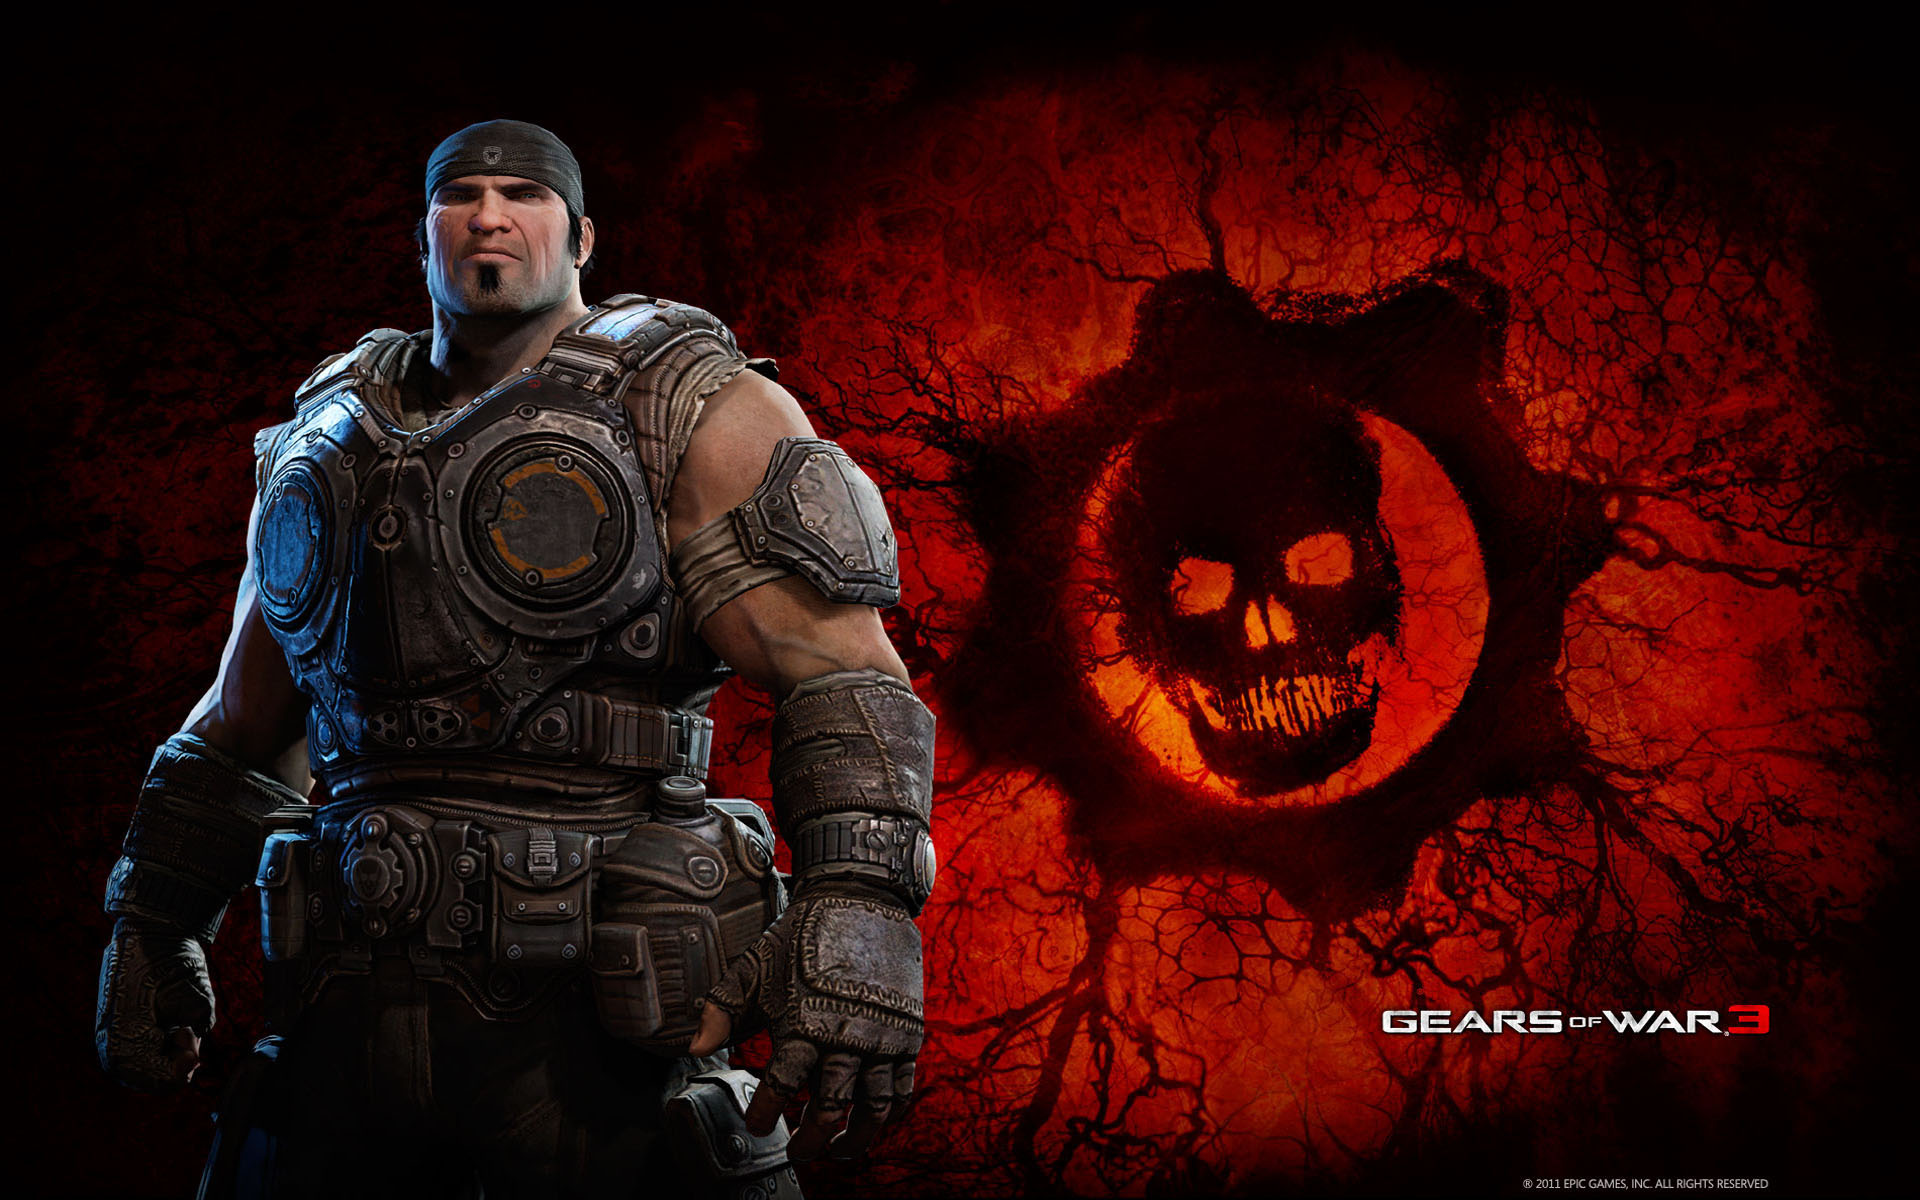 Marcus in Gears of War 3